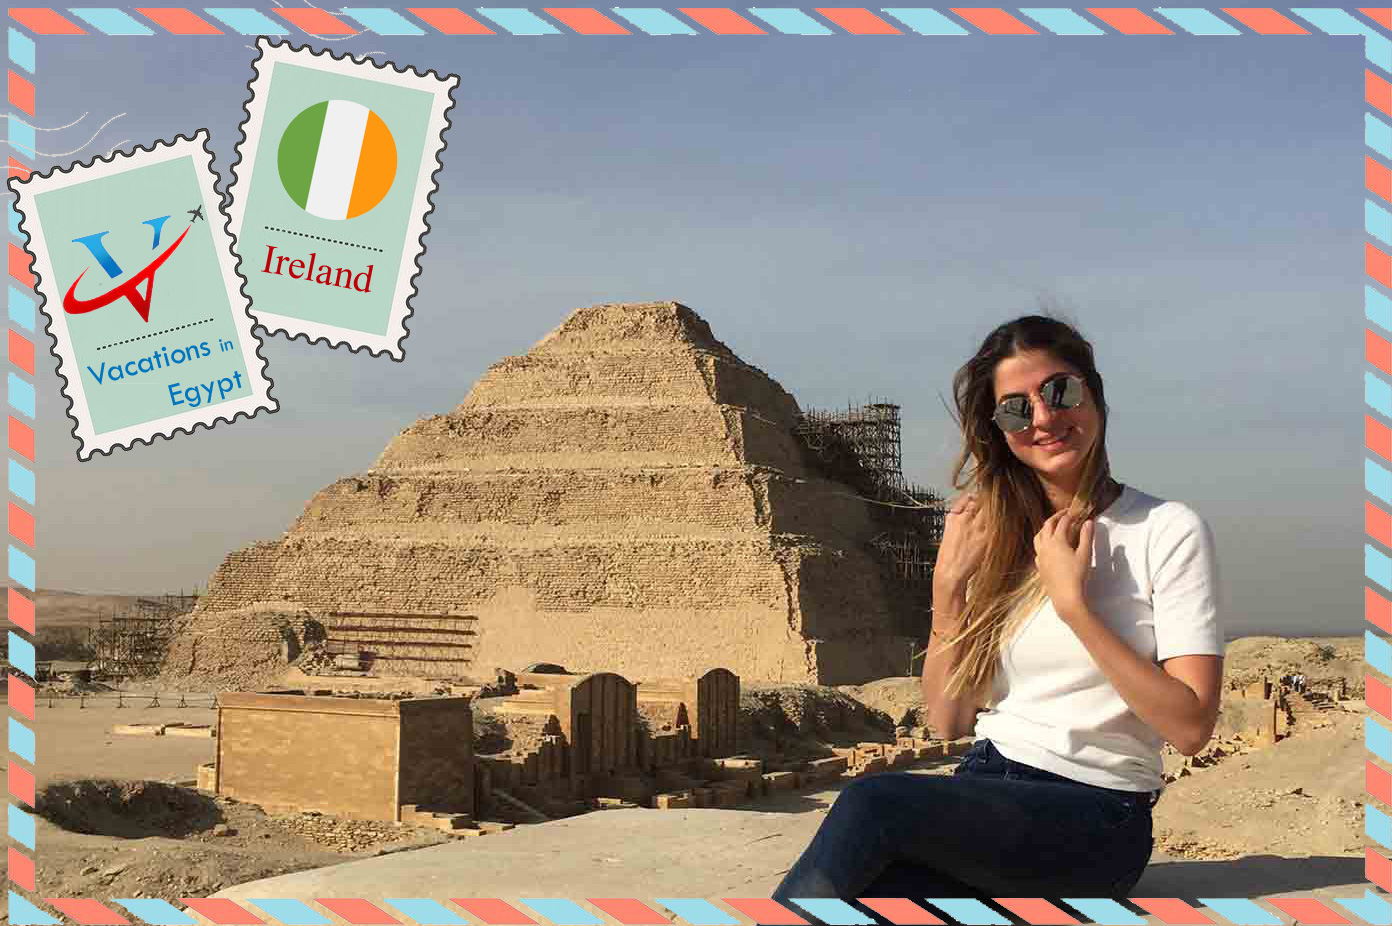 Egypt holidays from Ireland